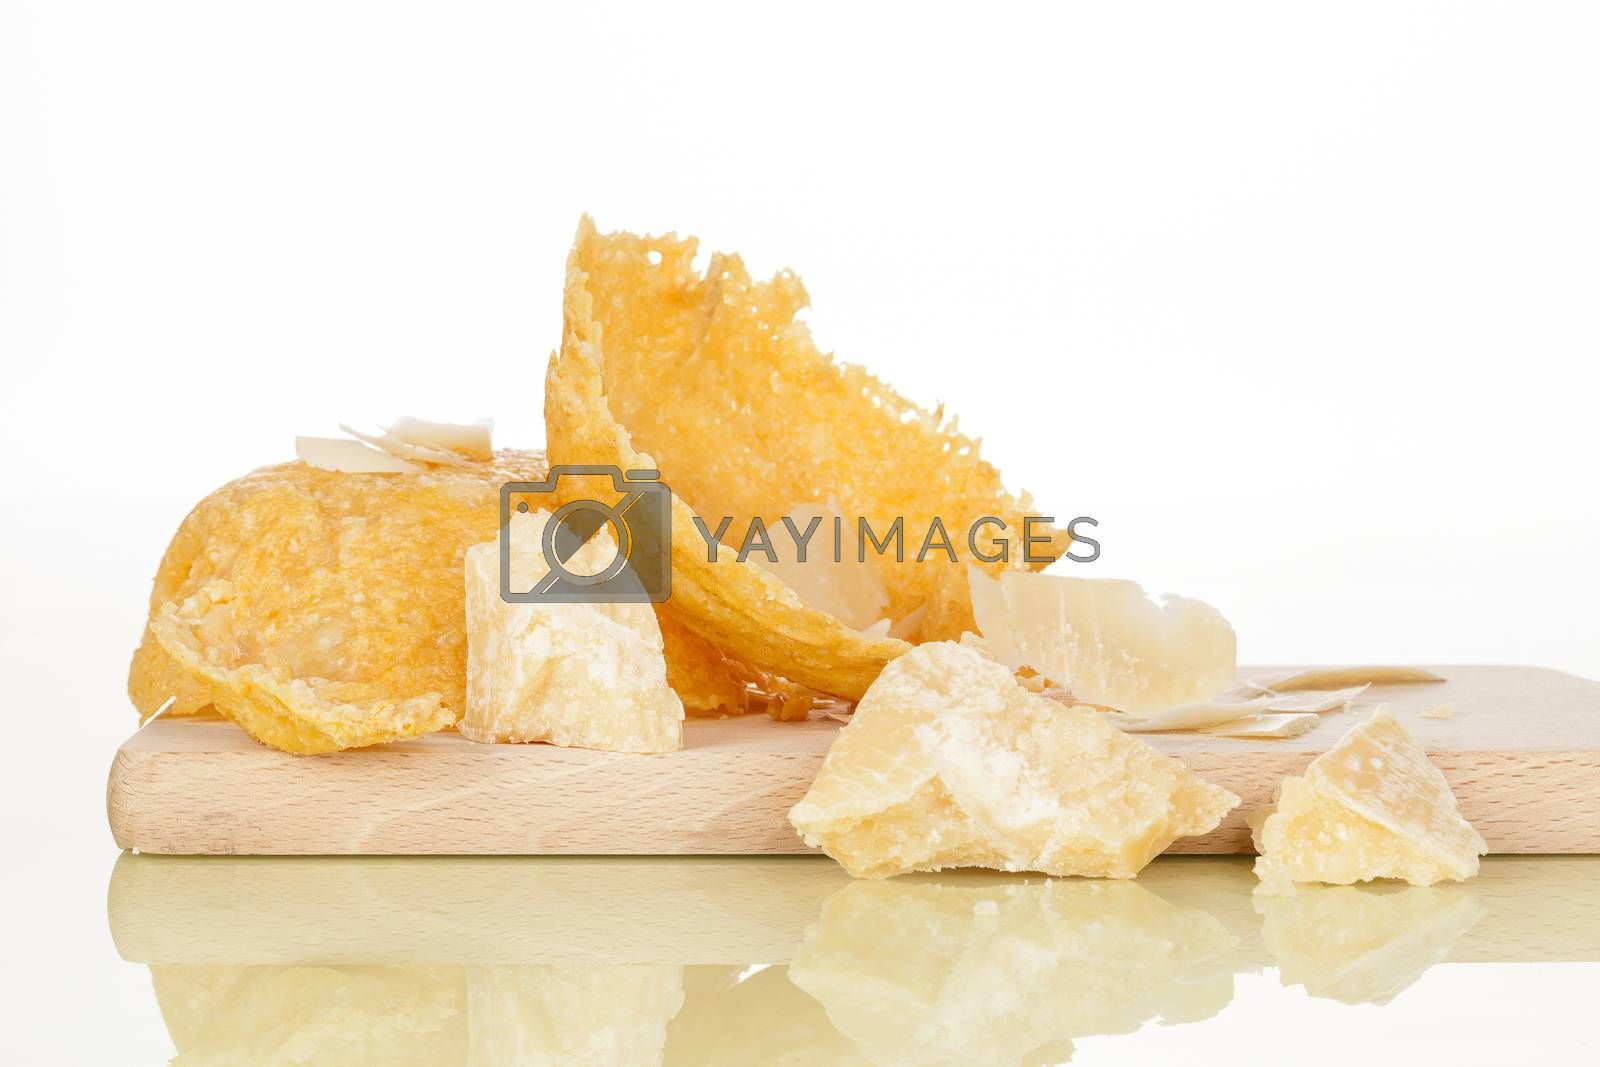 Parmigiano basked and parmigiano pieces on wooden kitchen board. Traditional parmigiano cheese eating.